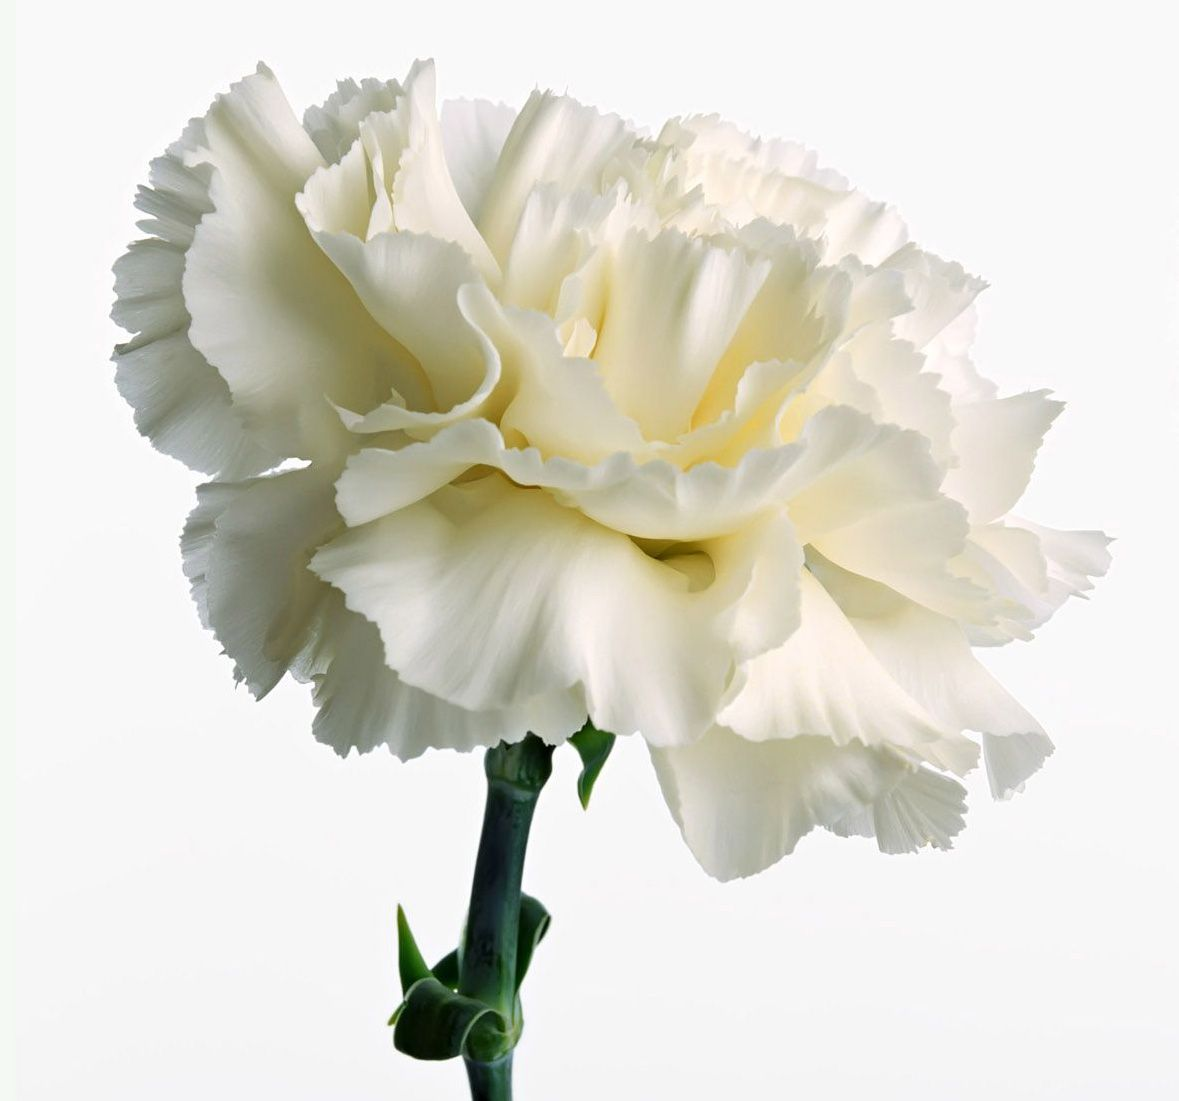 White Carnation Victorian Meaning Sweet Lovely Innocence Pure Love Woman S Good Luck Gift Carnation Flower Pictures Carnation Flower White Carnation